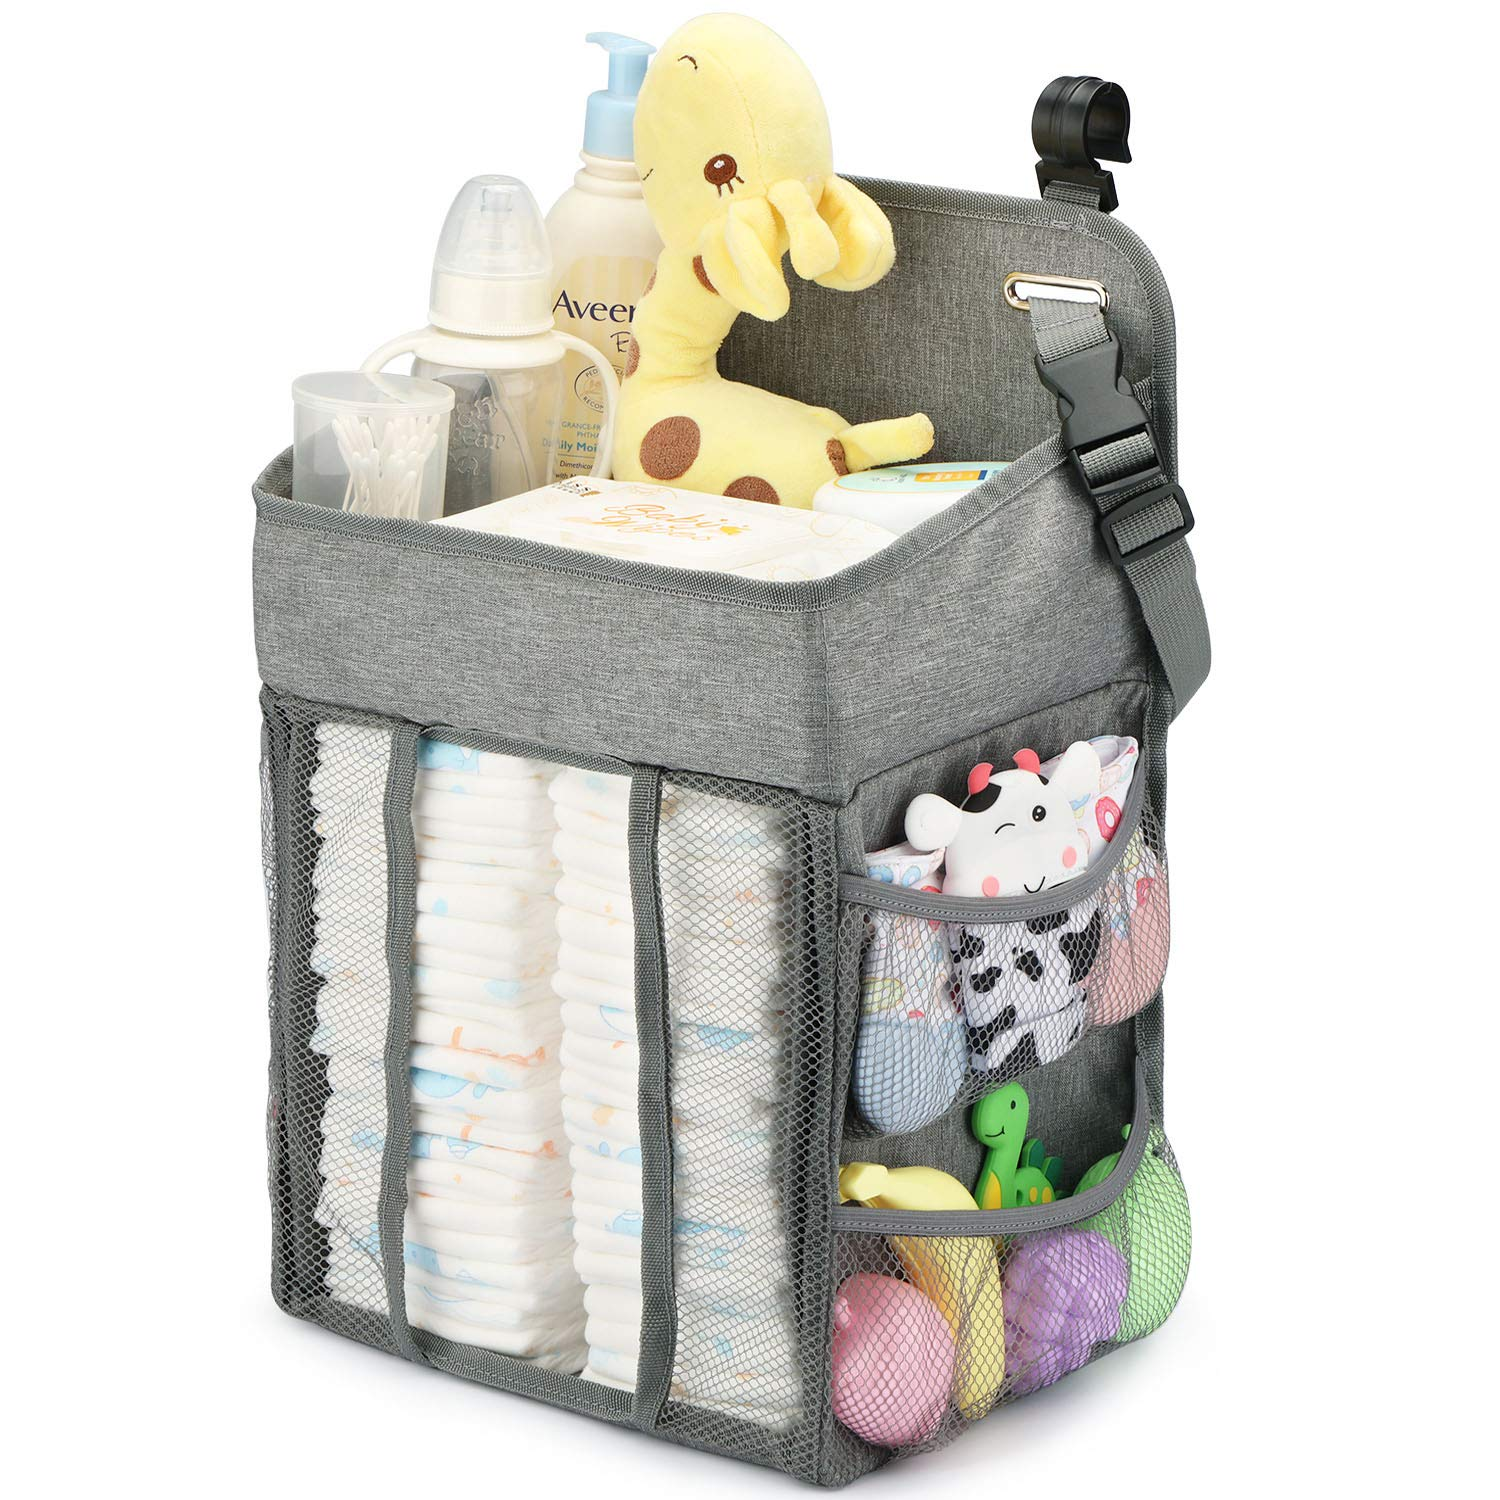 Changing Table Diaper Organizer Baby Hanging Diaper Stacker Nursery Caddy Organizer For Cribs Playard Baby Essentials Storage Gray Baby